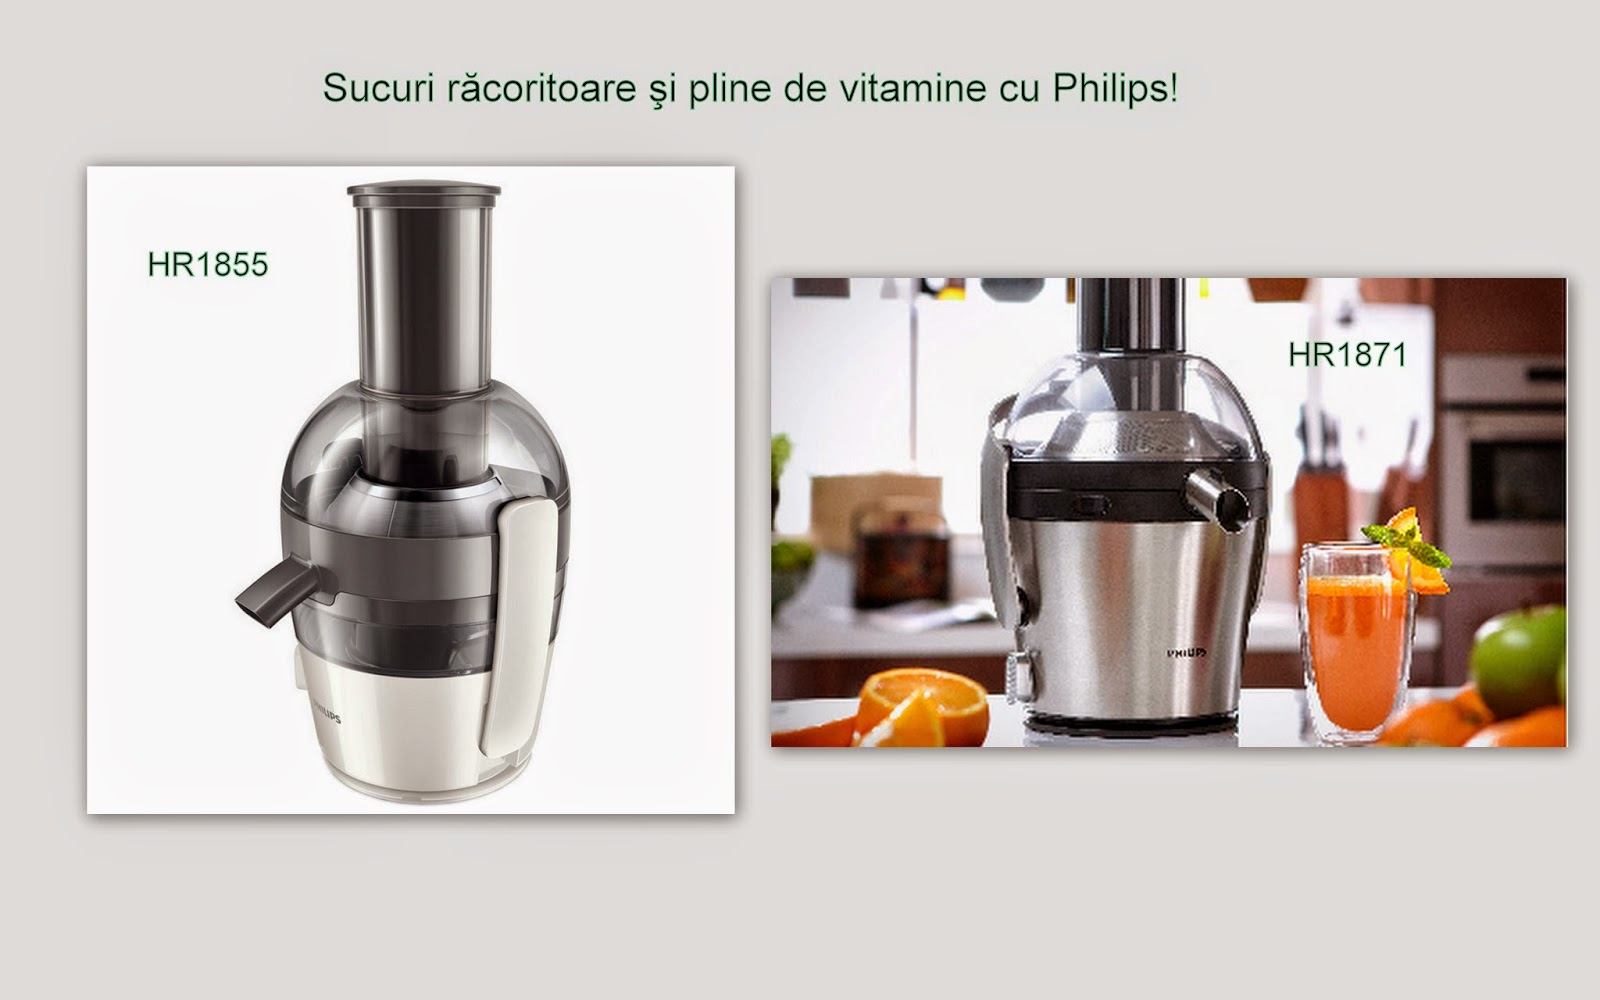 http://www.philips.ro/c/gatitul/viva-collection-multicooker-philips-hd3037_70/prd